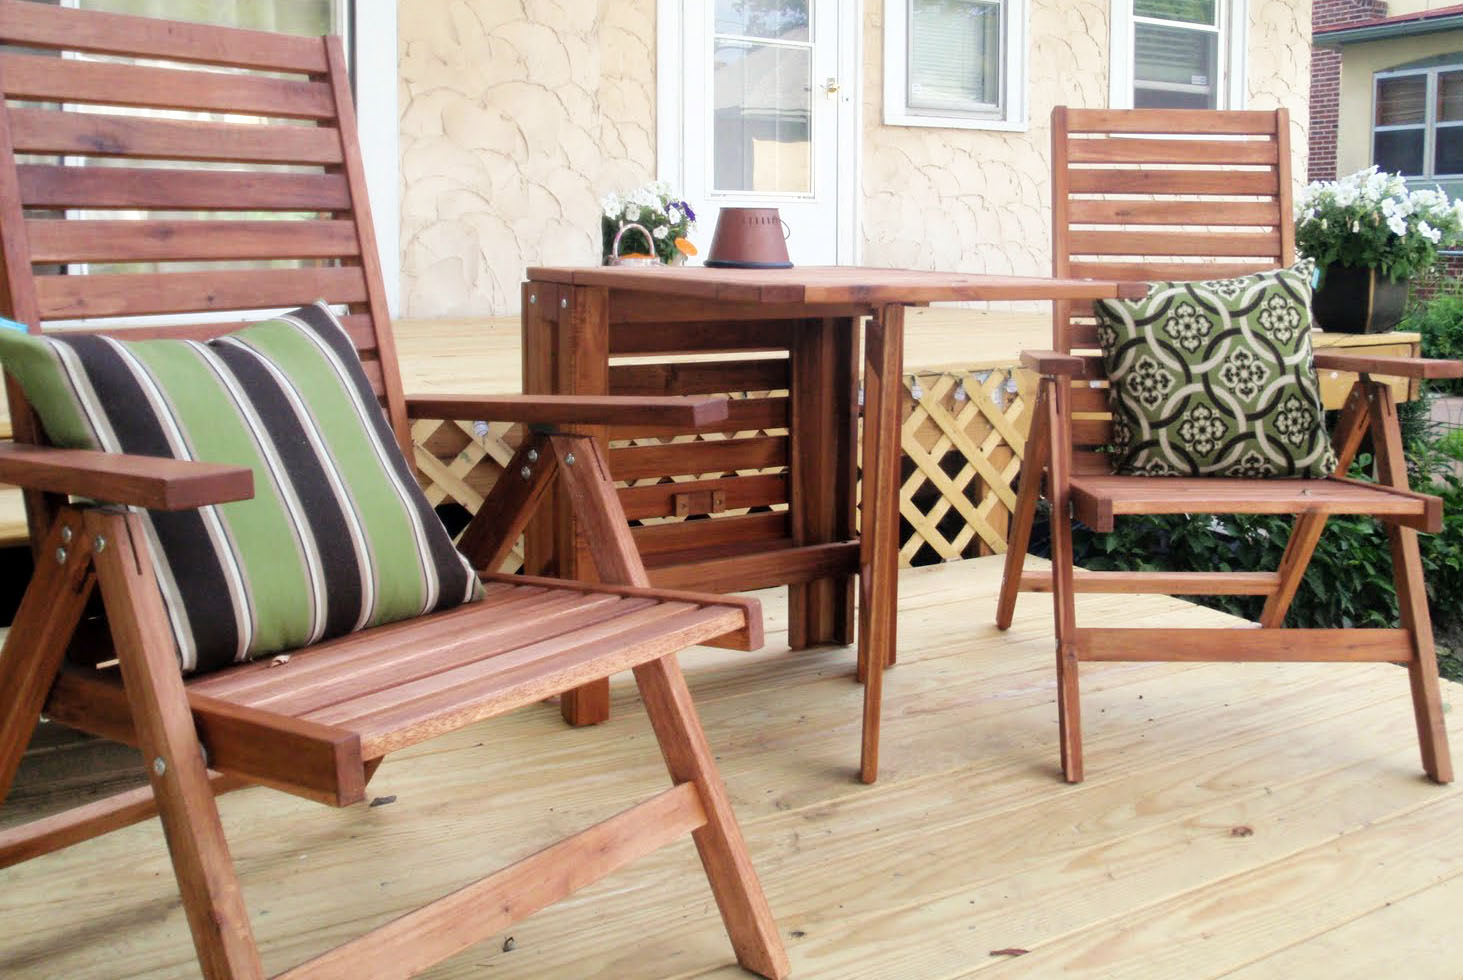 Small balcony furniture option homesfeed for Small outdoor table and chairs